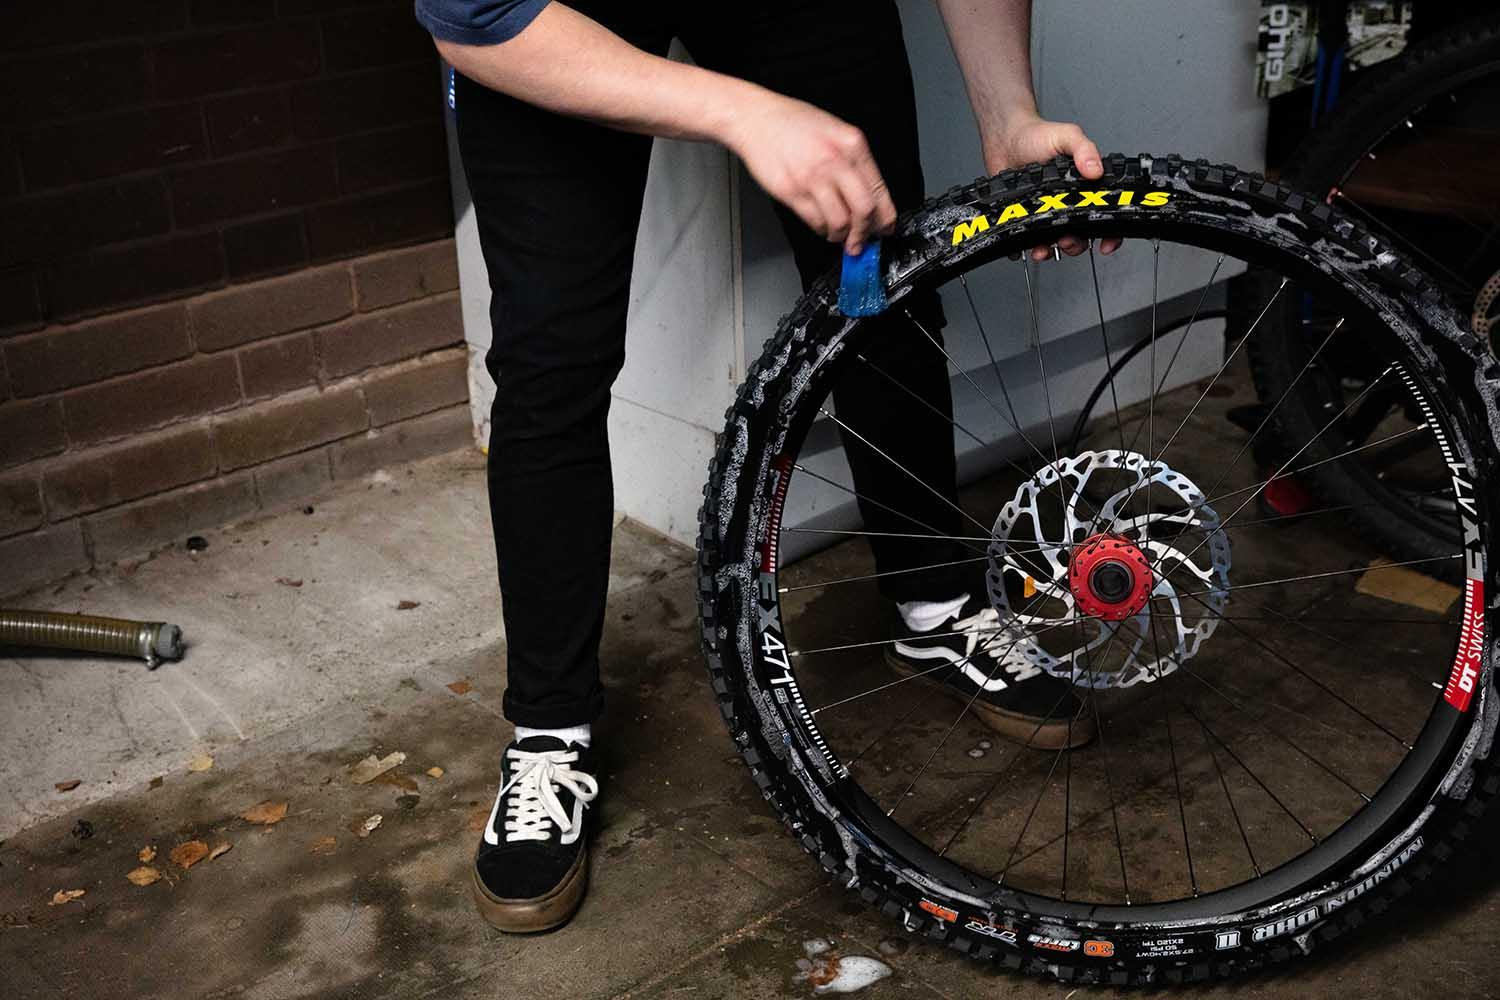 Soaping up a tubeless rim